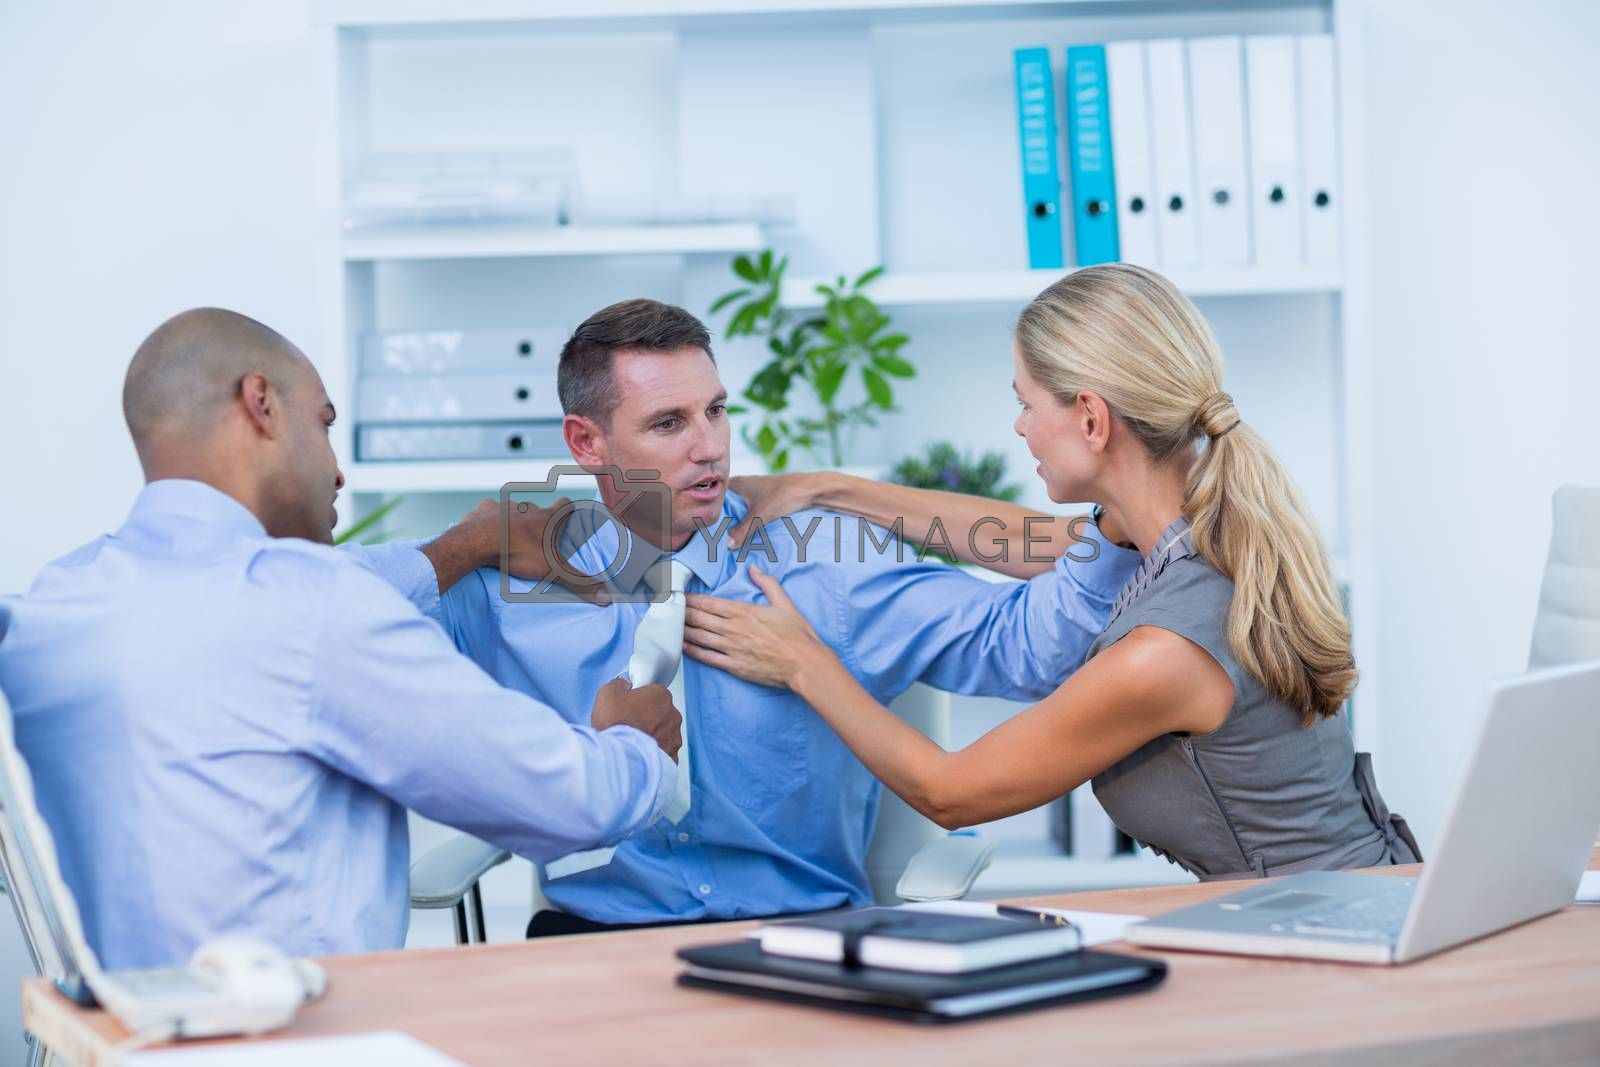 Royalty free image of Business partners fighting together by Wavebreakmedia